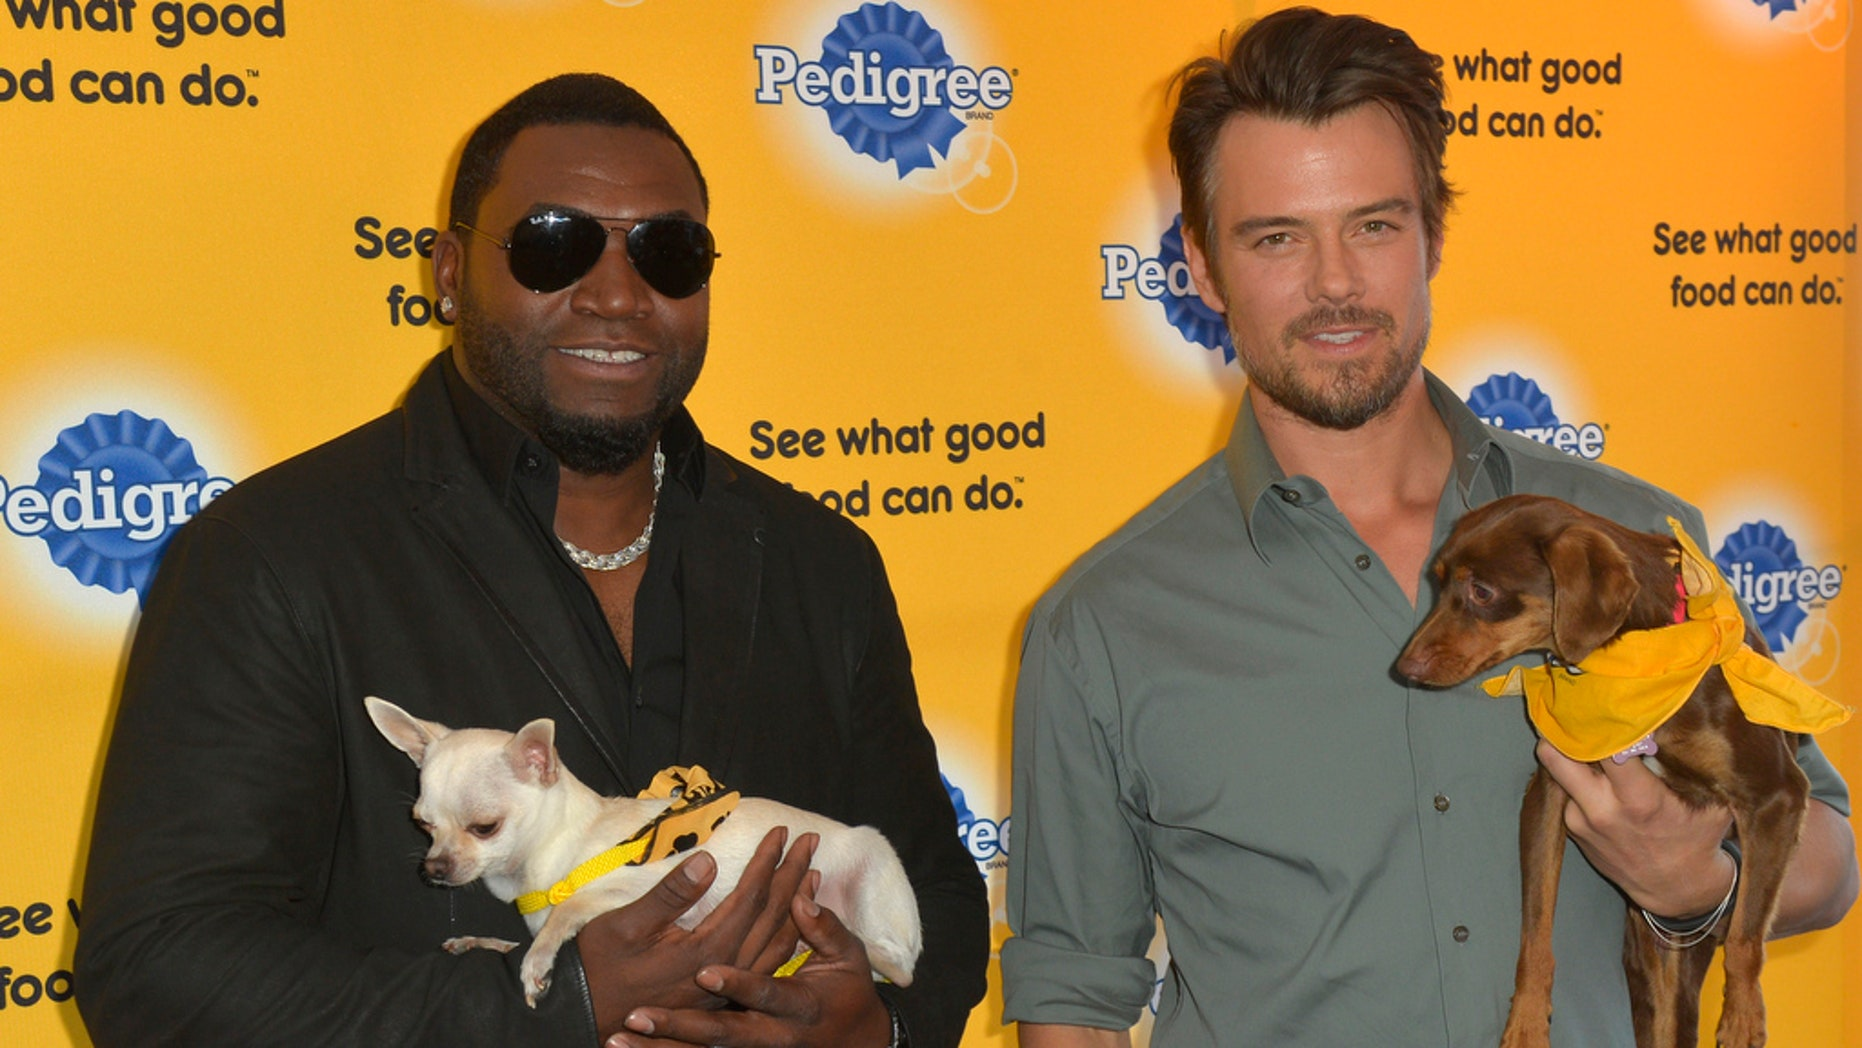 """Dog lovers David Ortiz and Josh Duhamel kick-off the PEDIGREE¨ Brand """"See what good food can do"""" campaign at the 2014 Sundance Film Festival Monday Jan. 20, 2014, in Park City, Utah."""